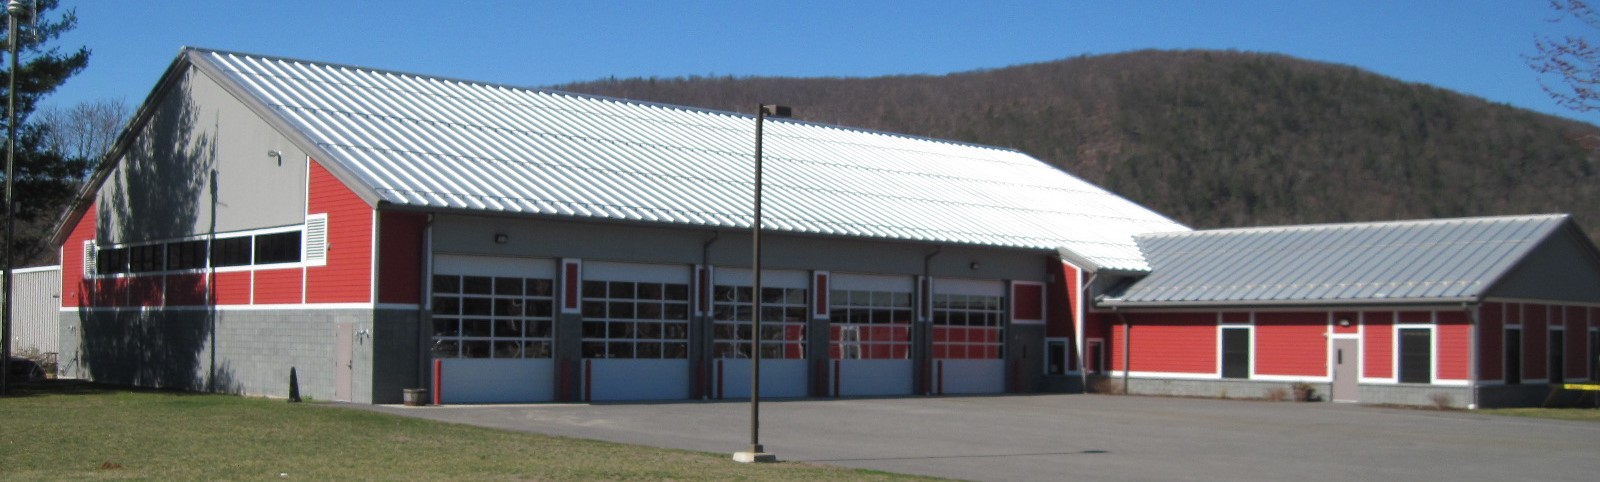 KentFirehouse1panoramic